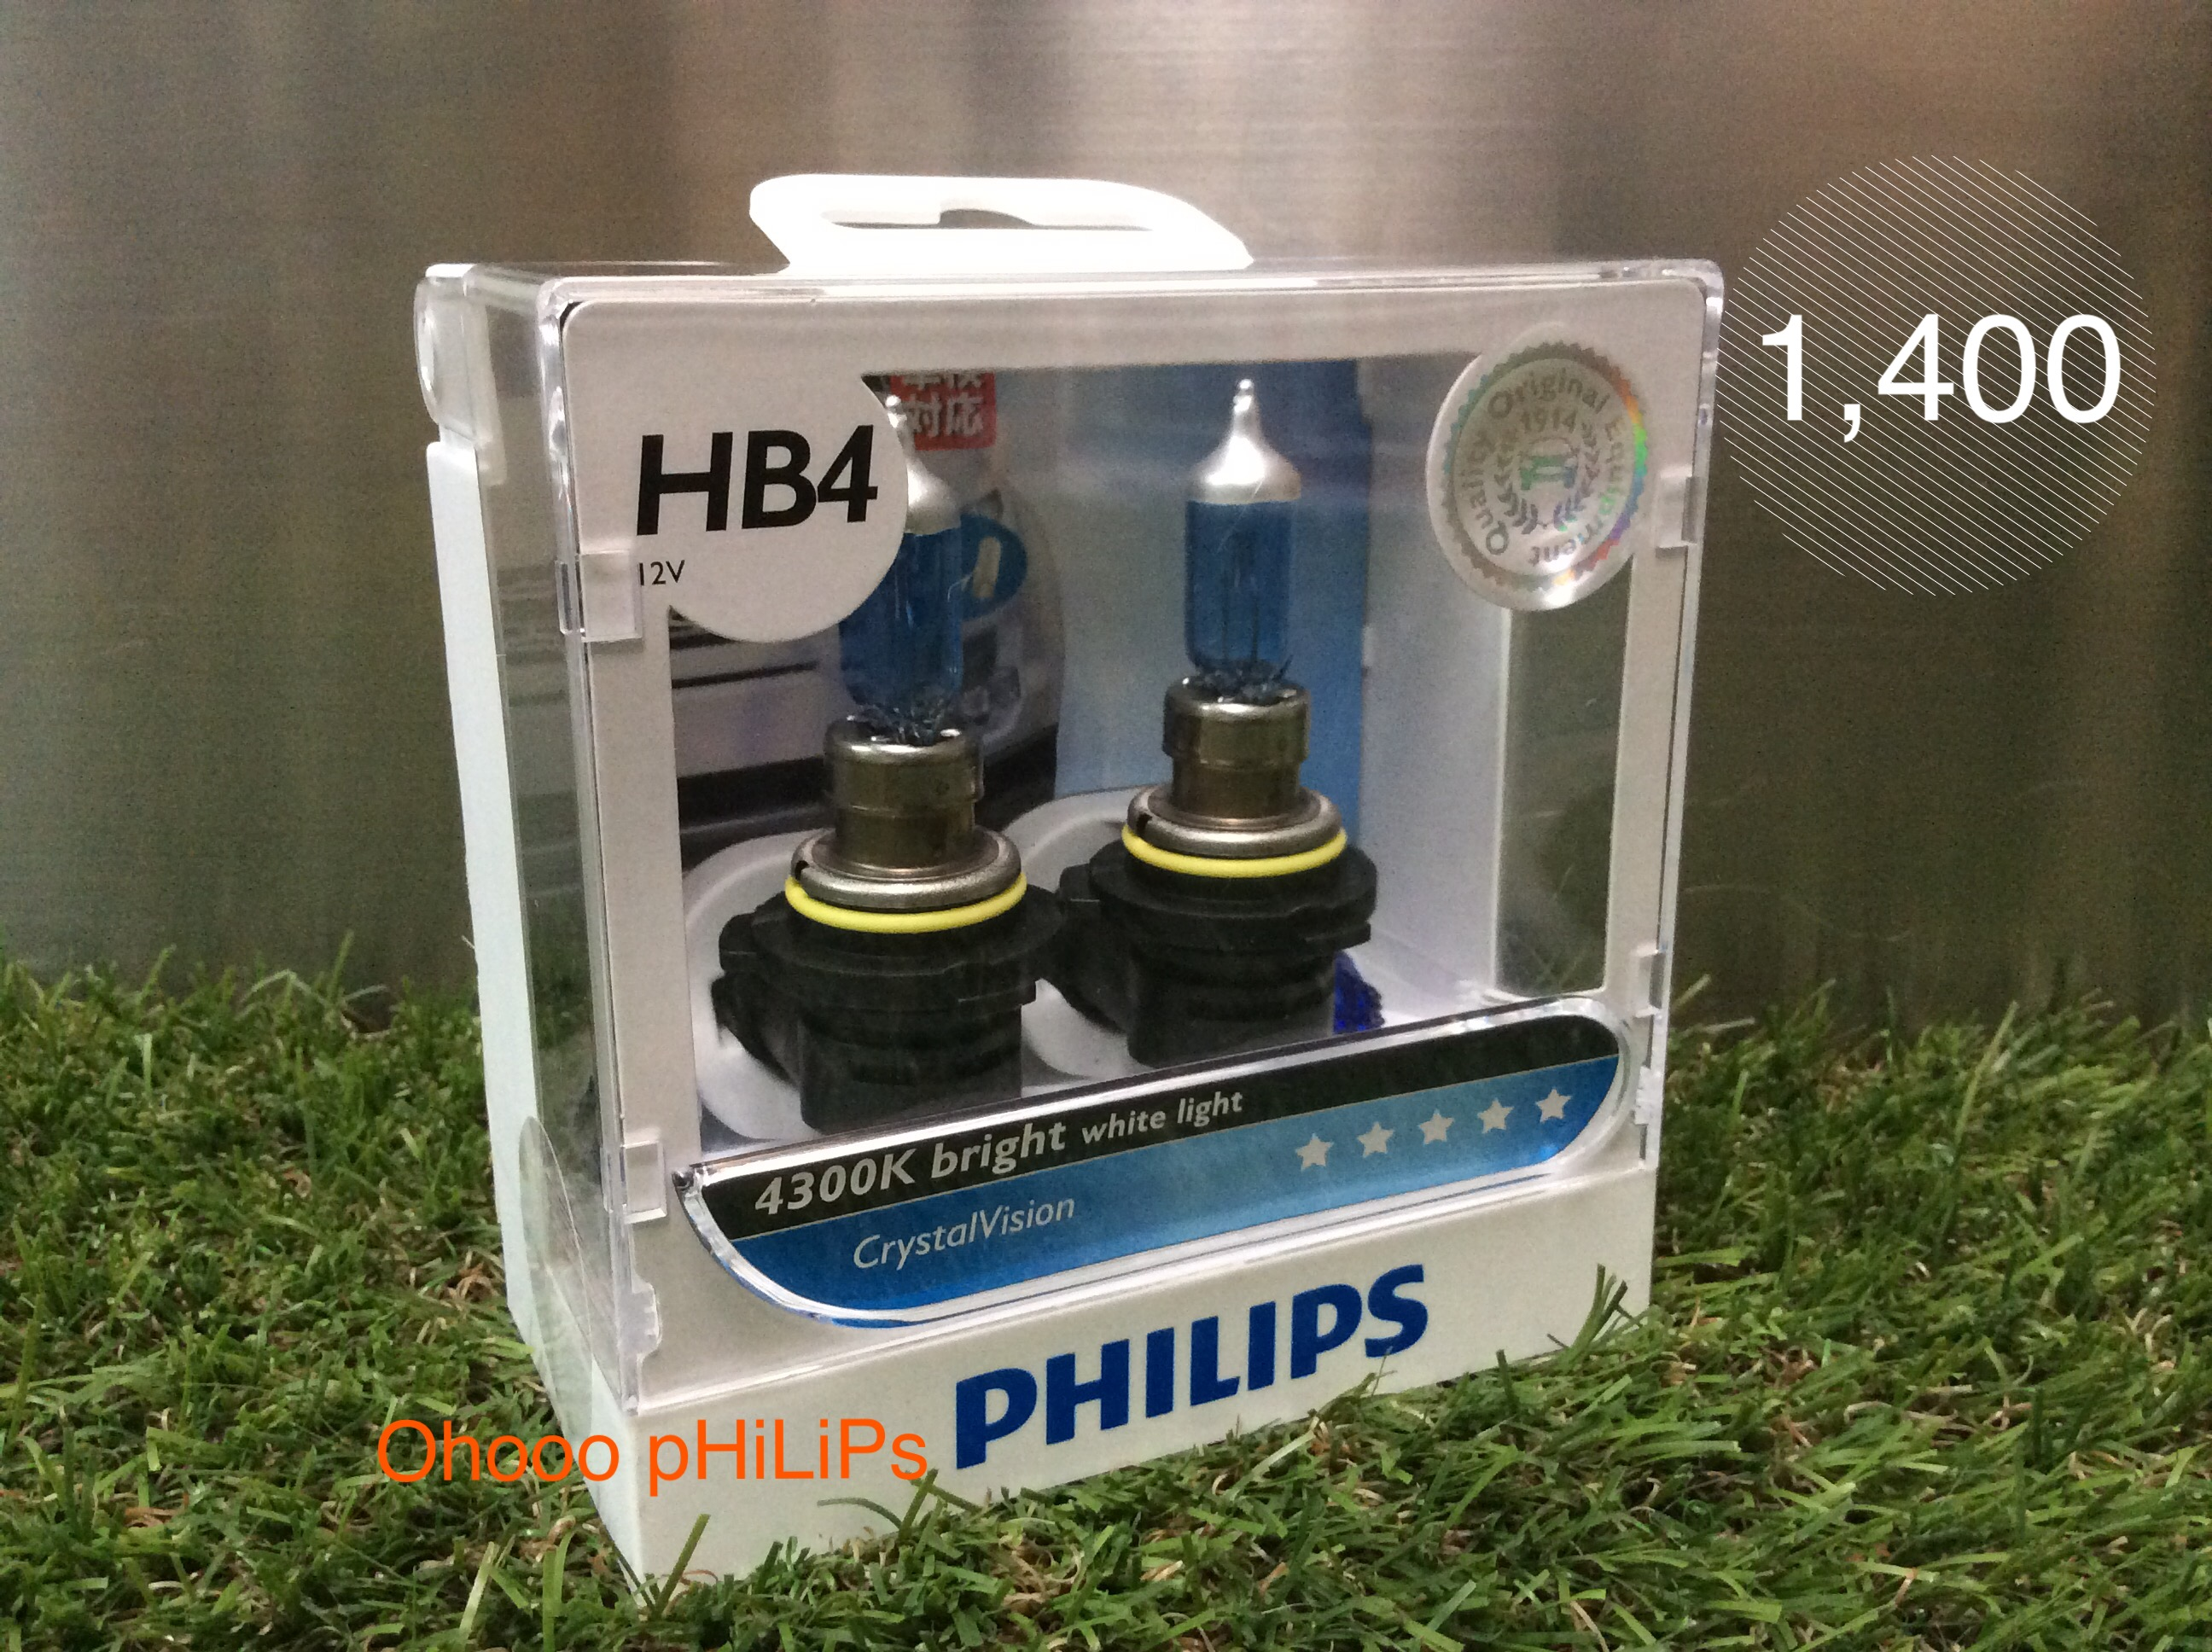 Philips Crystal Vision 4300K HB4